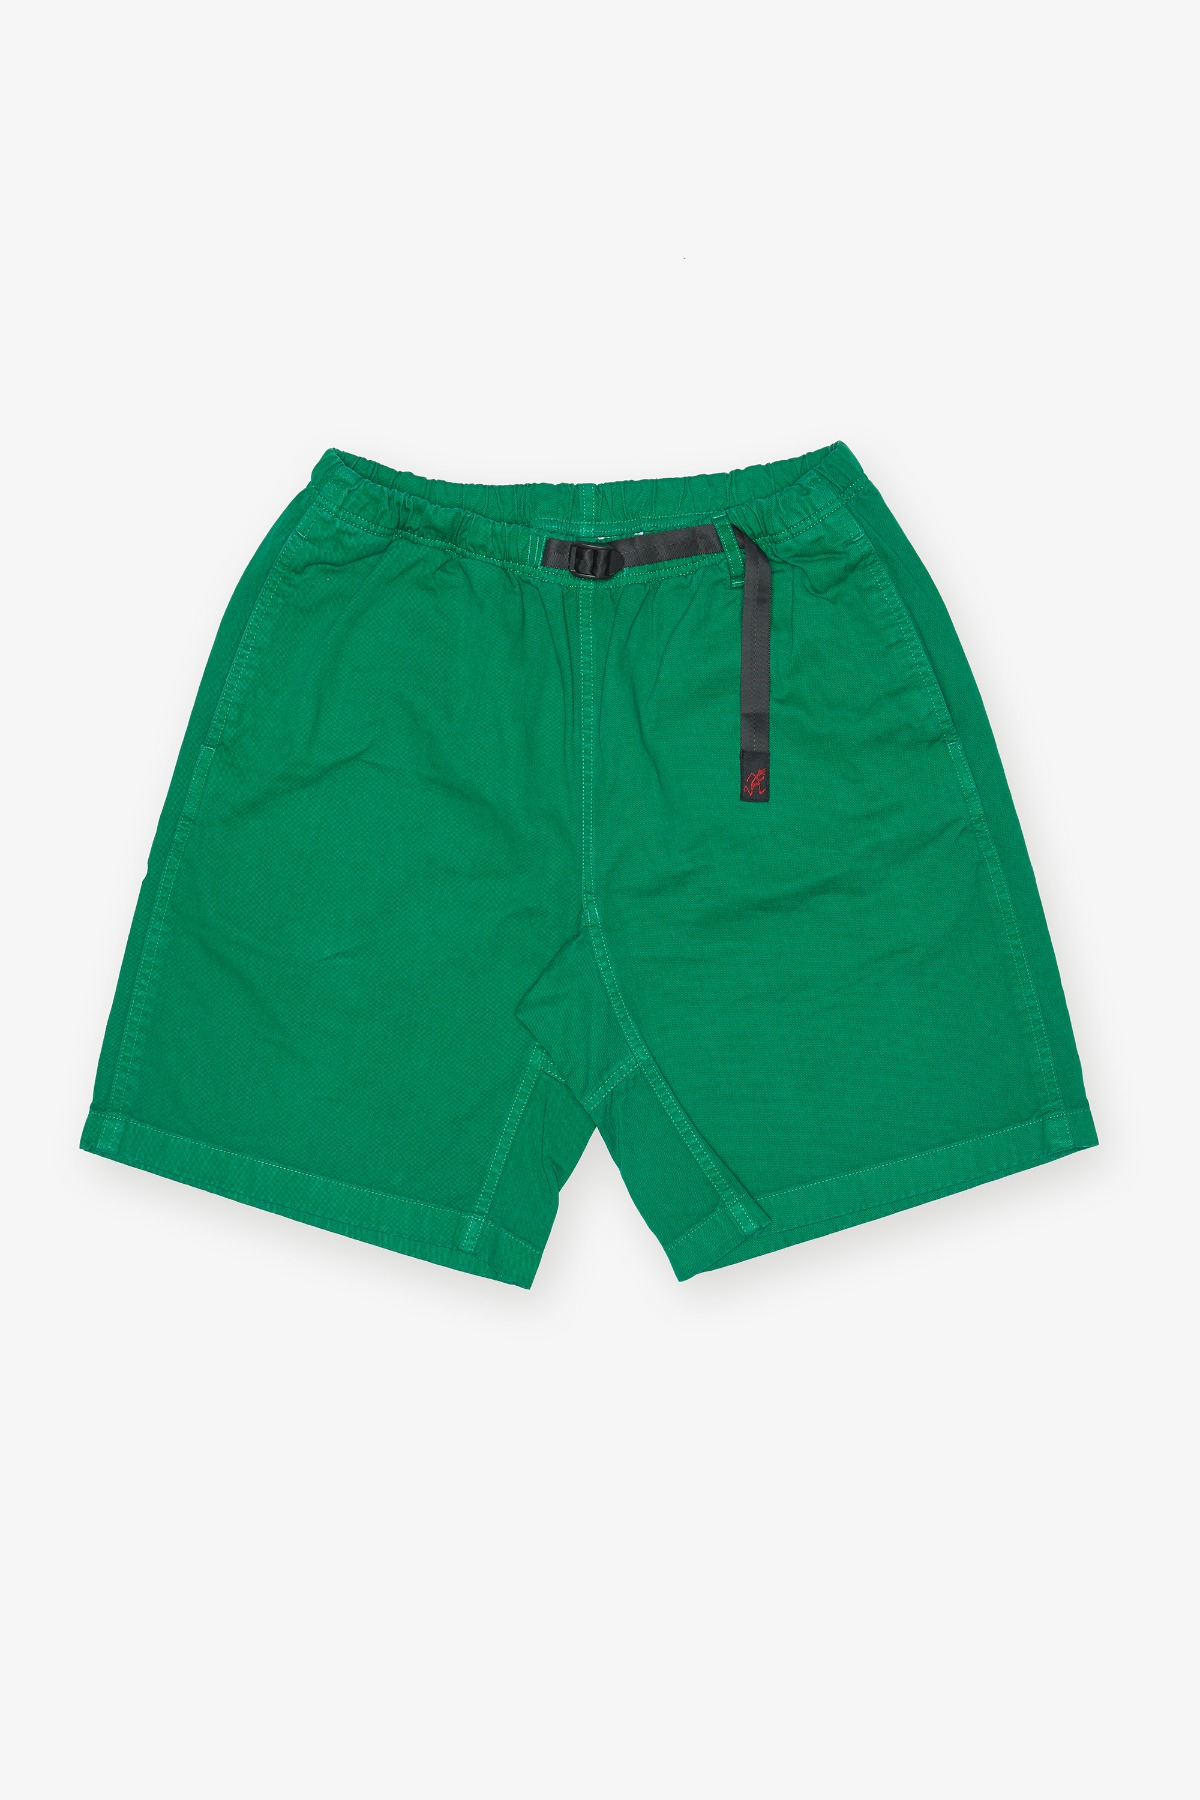 G-SHORTS MIDDLE GREEN